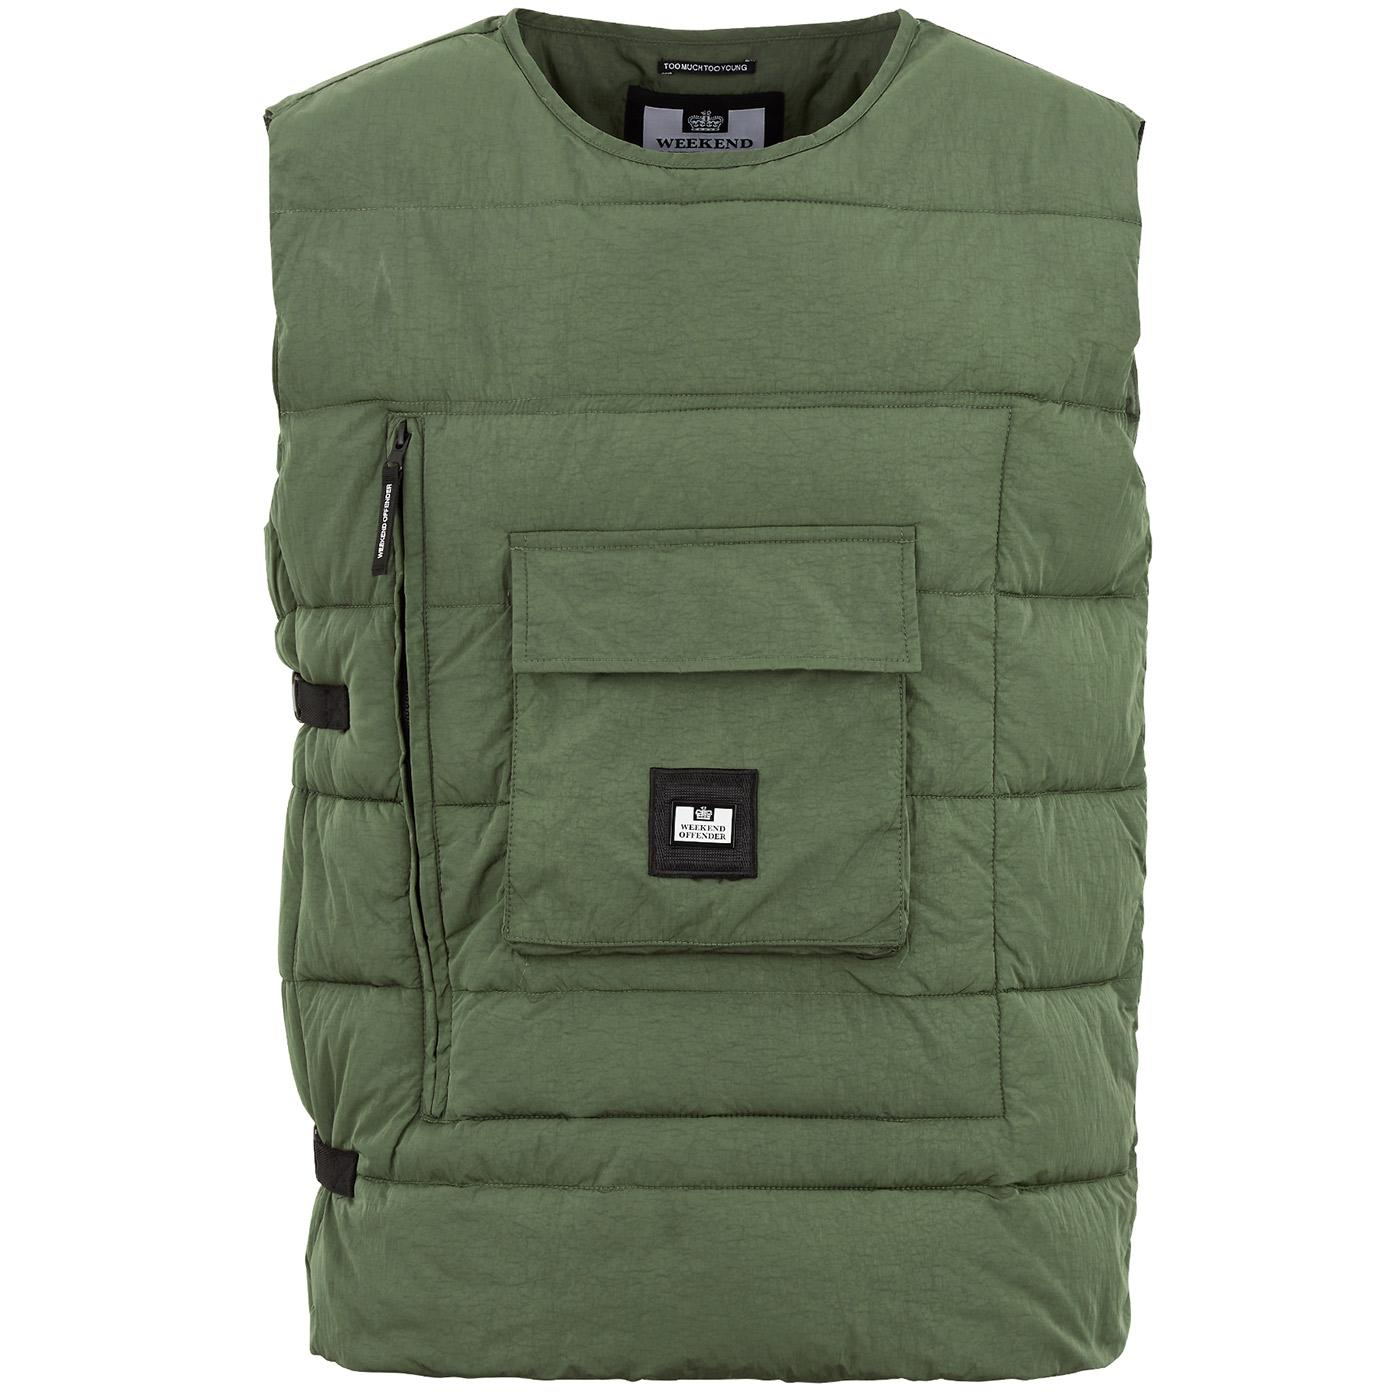 Tactician WEEKEND OFFENDER Padded Tactical Vest GC